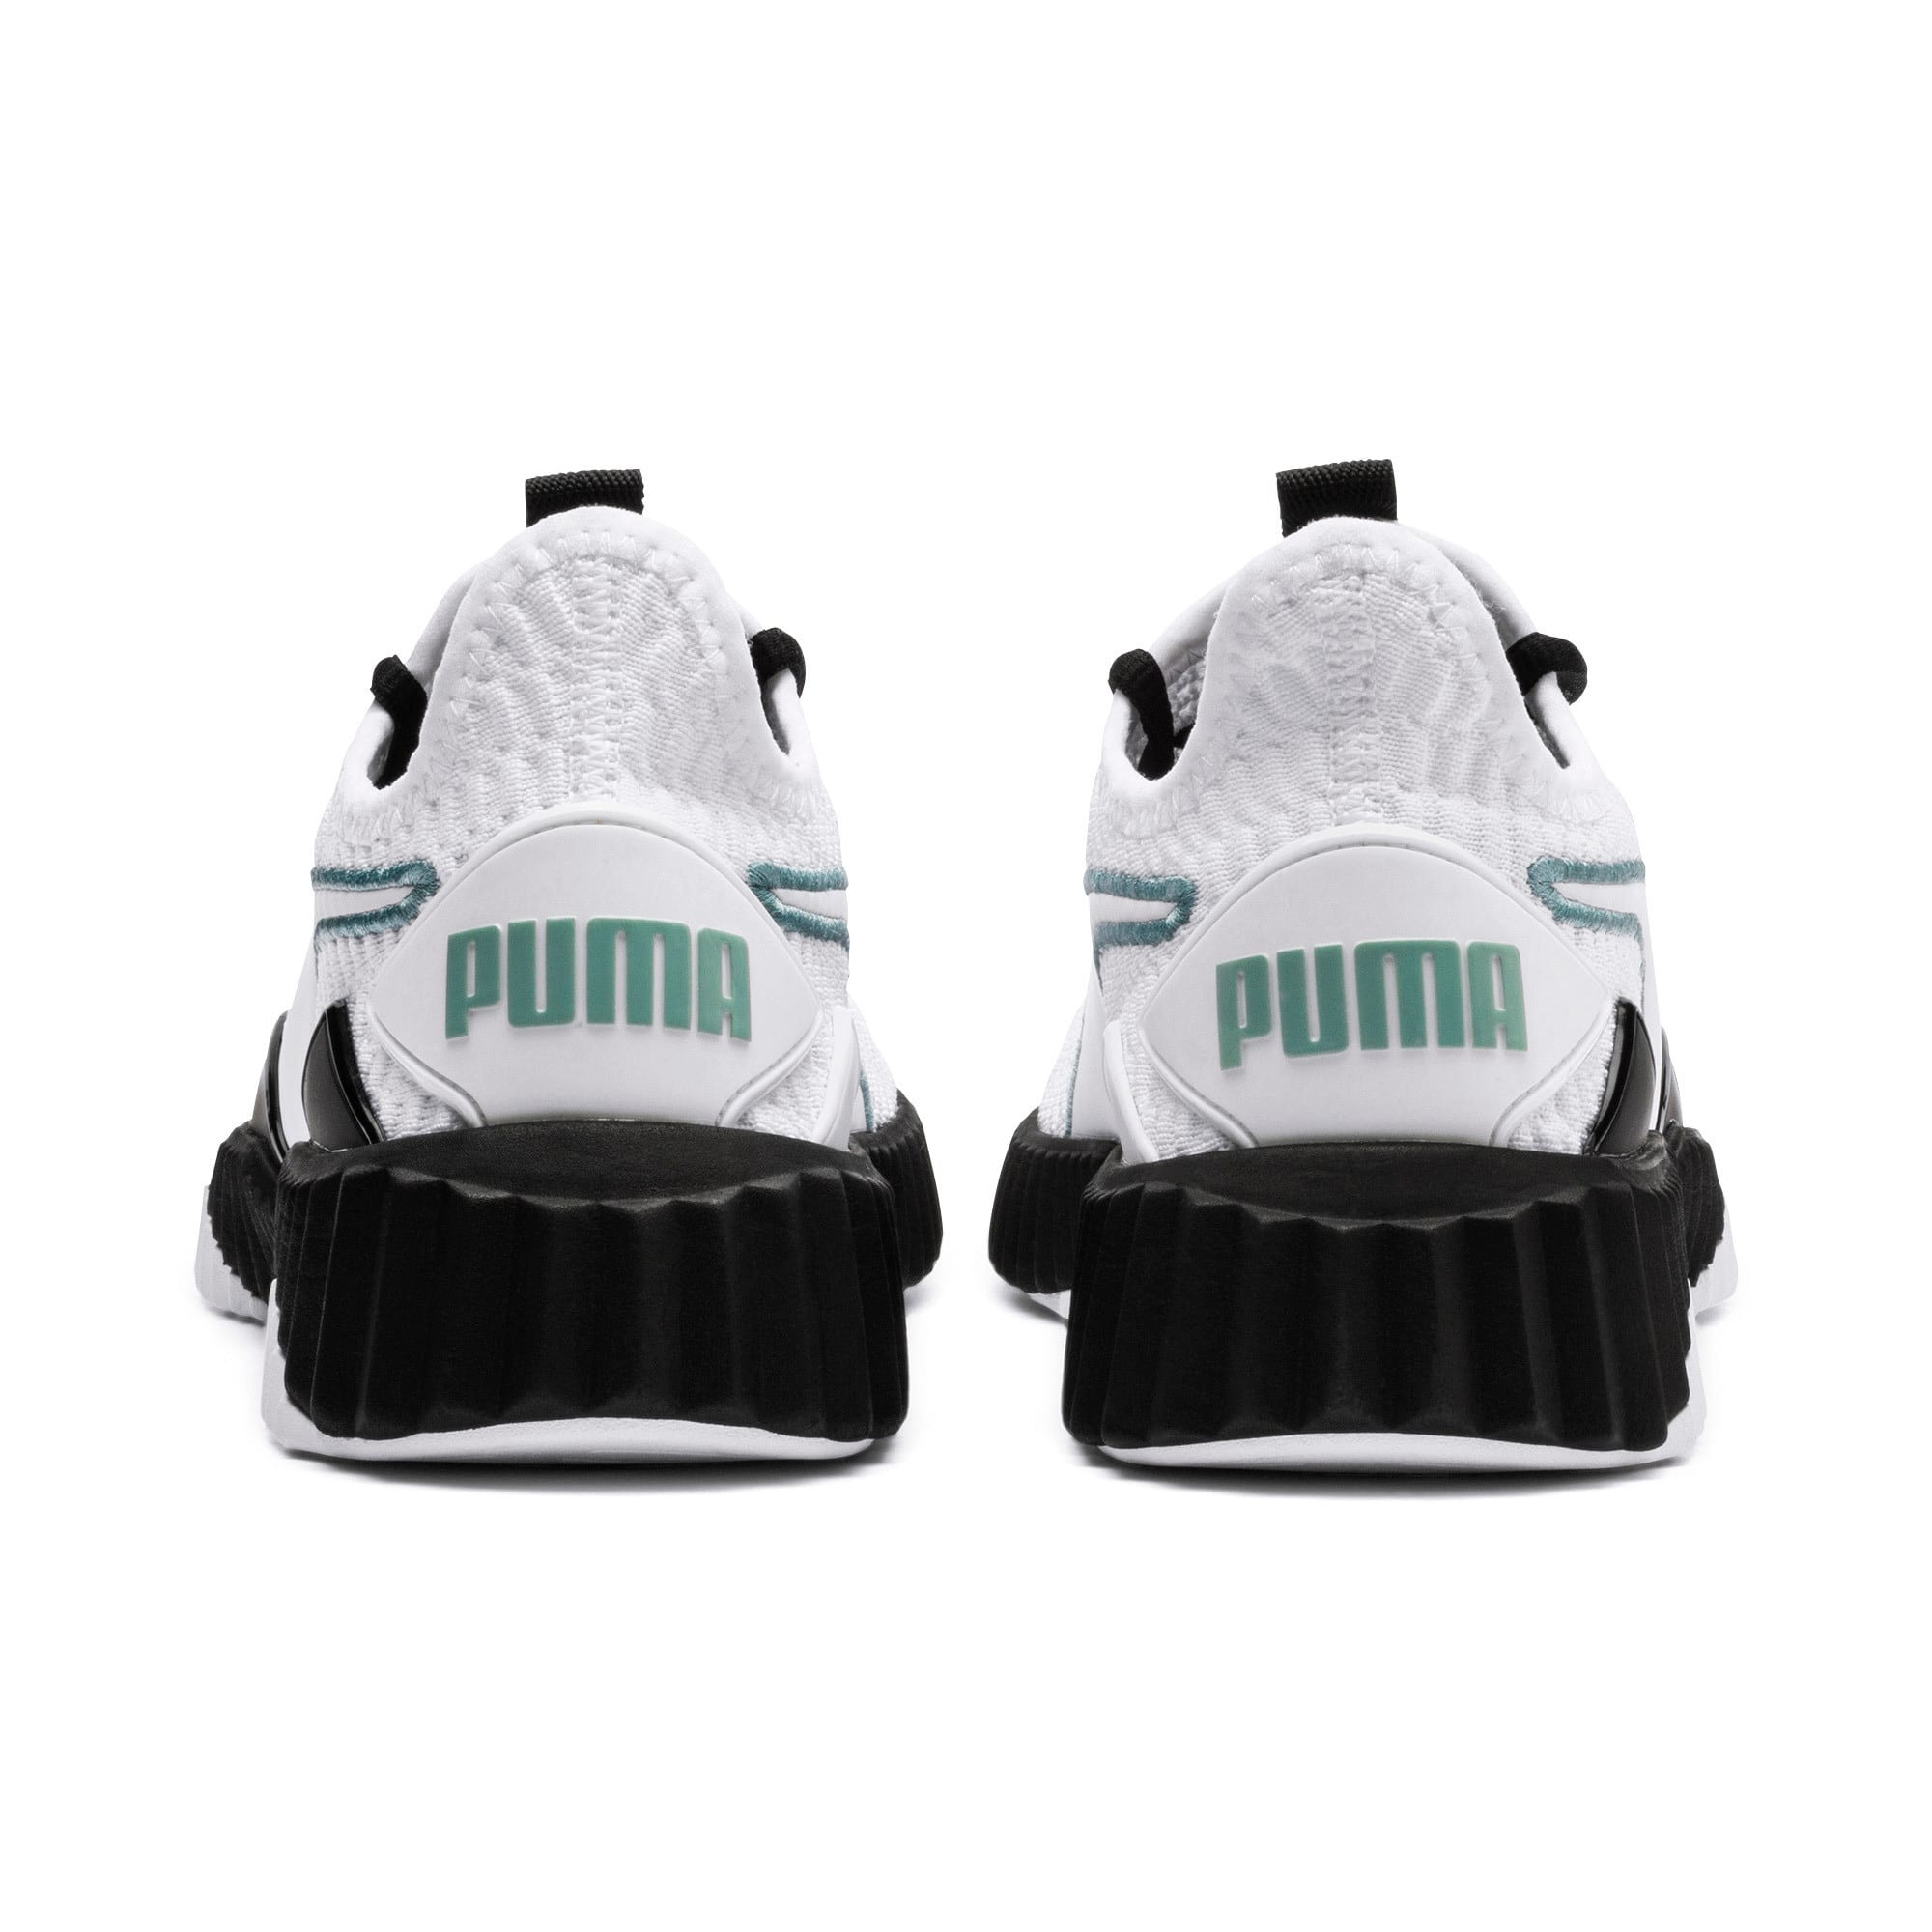 Thumbnail 4 of Defy Women's Training Shoes, Puma White-Puma Black, medium